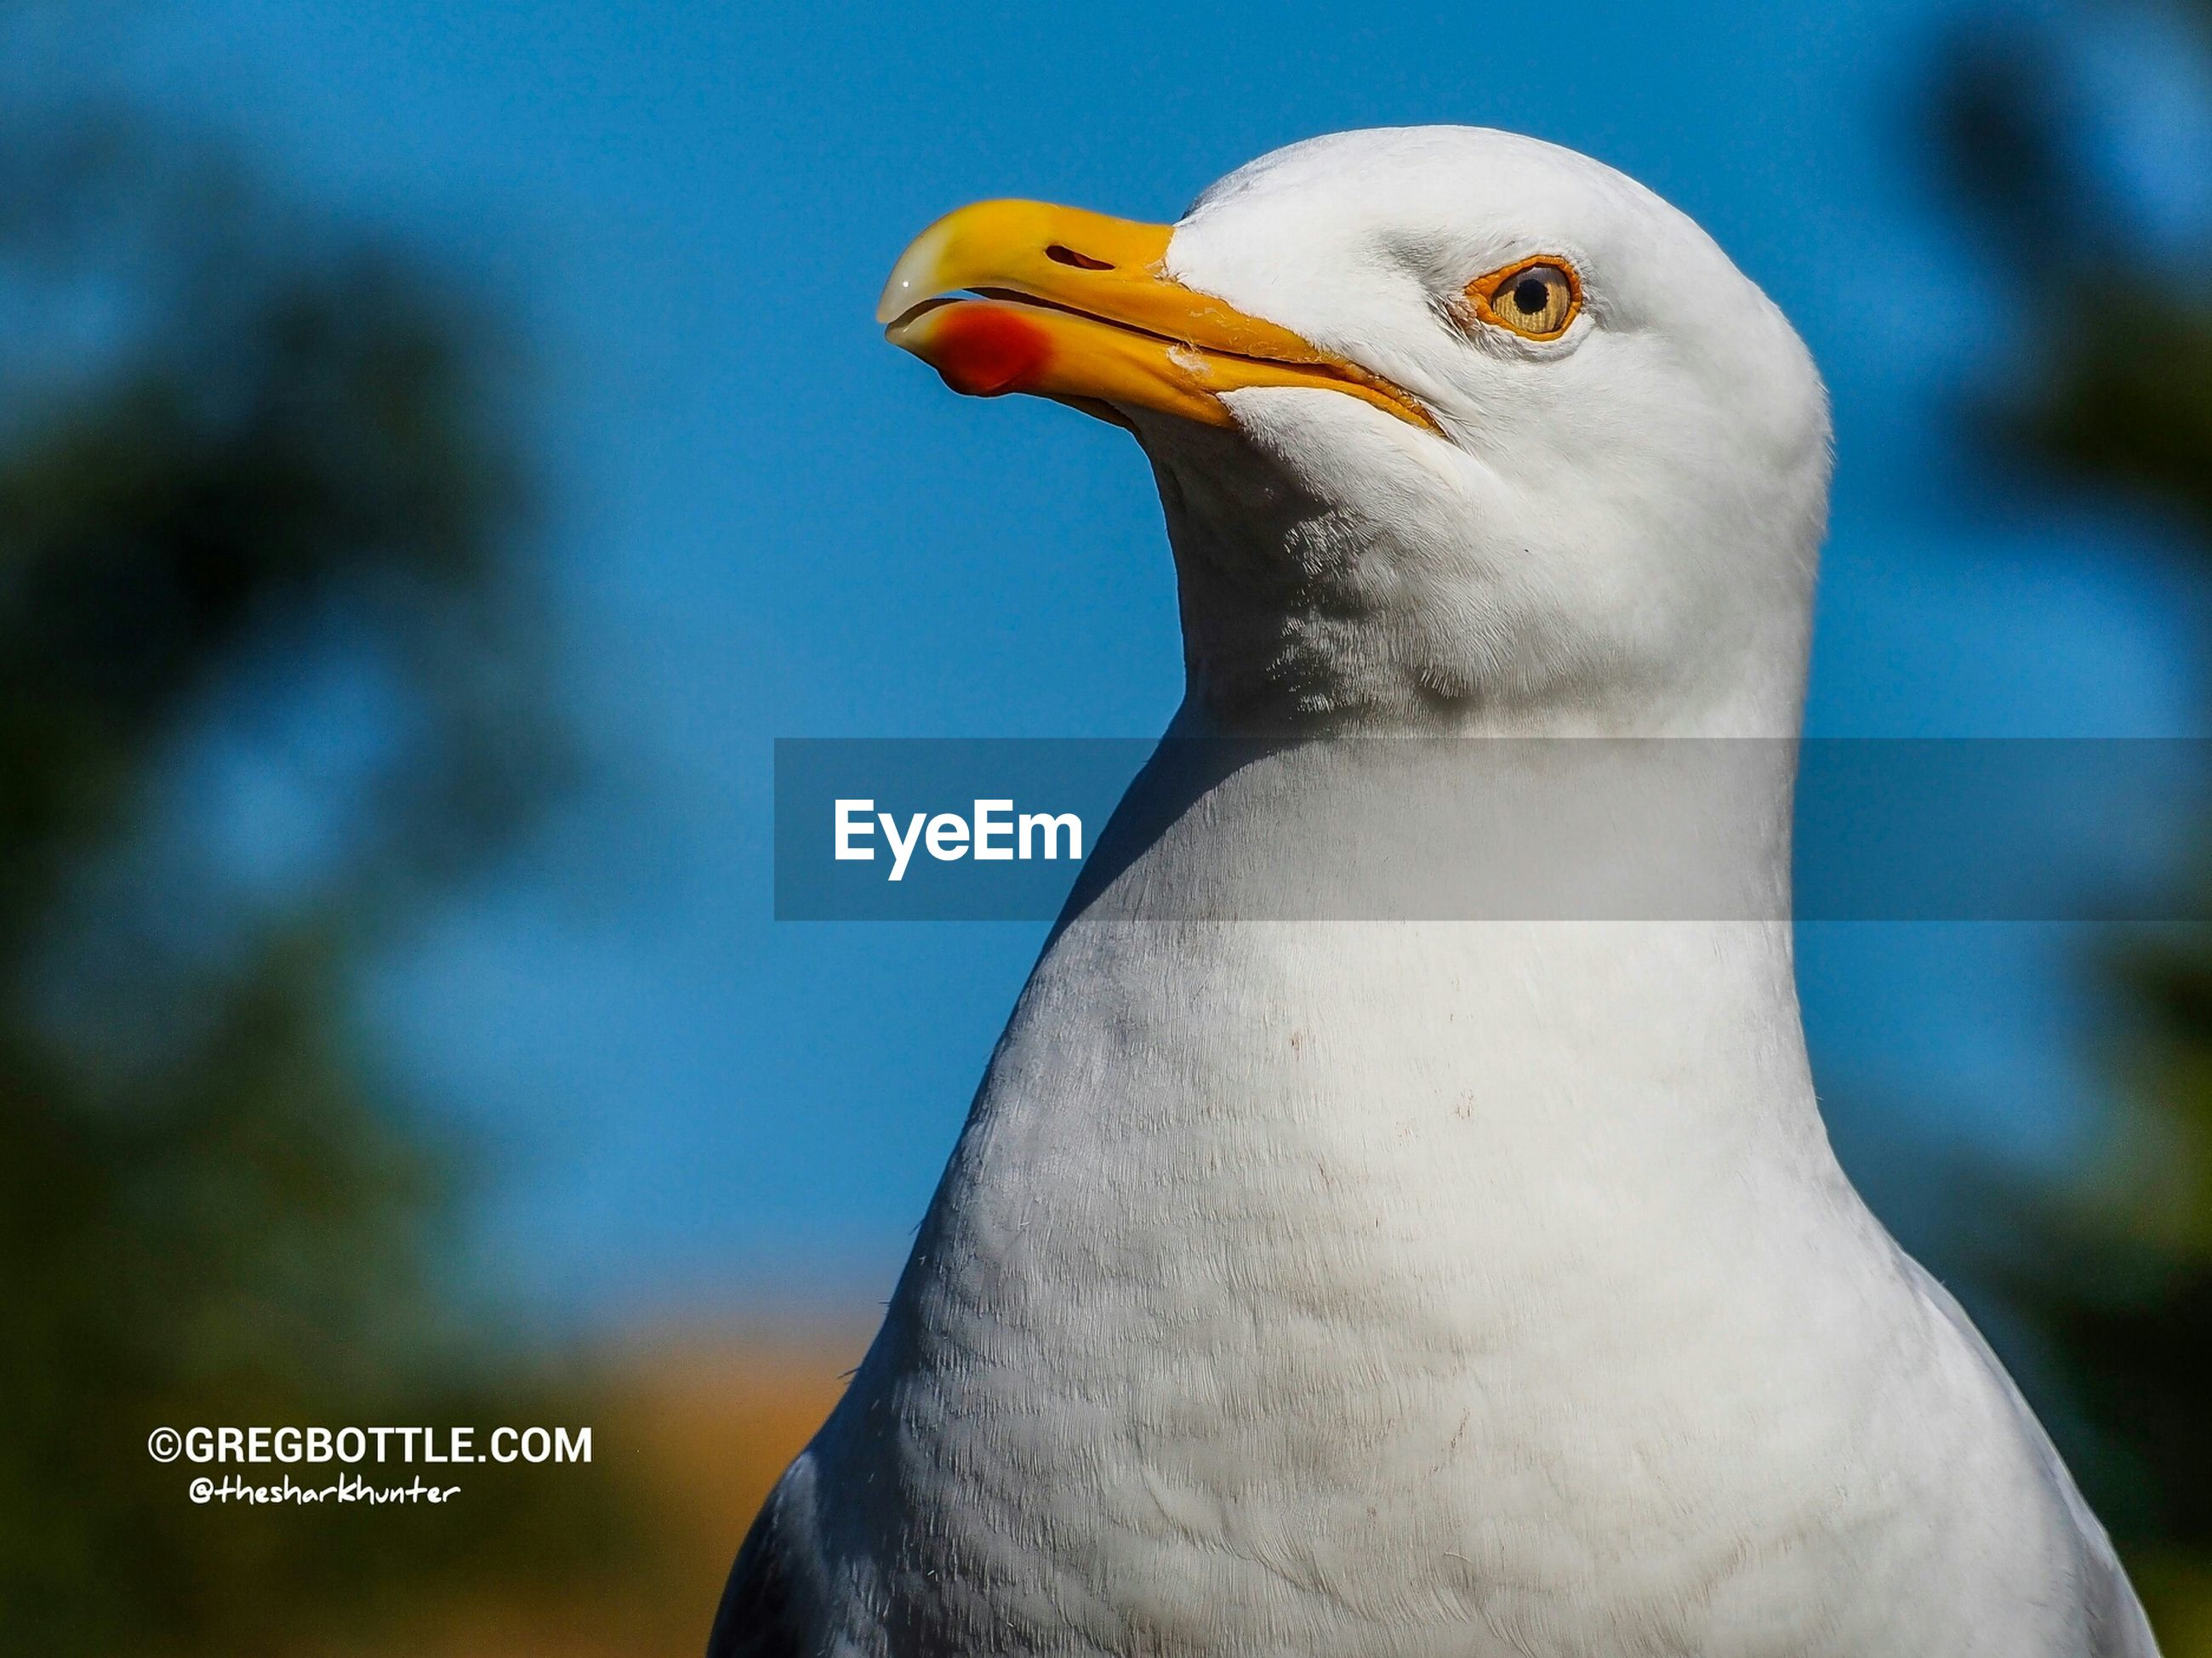 bird, one animal, animal themes, beak, close-up, animals in the wild, wildlife, focus on foreground, animal head, animal body part, white color, seagull, side view, outdoors, day, nature, part of, no people, looking away